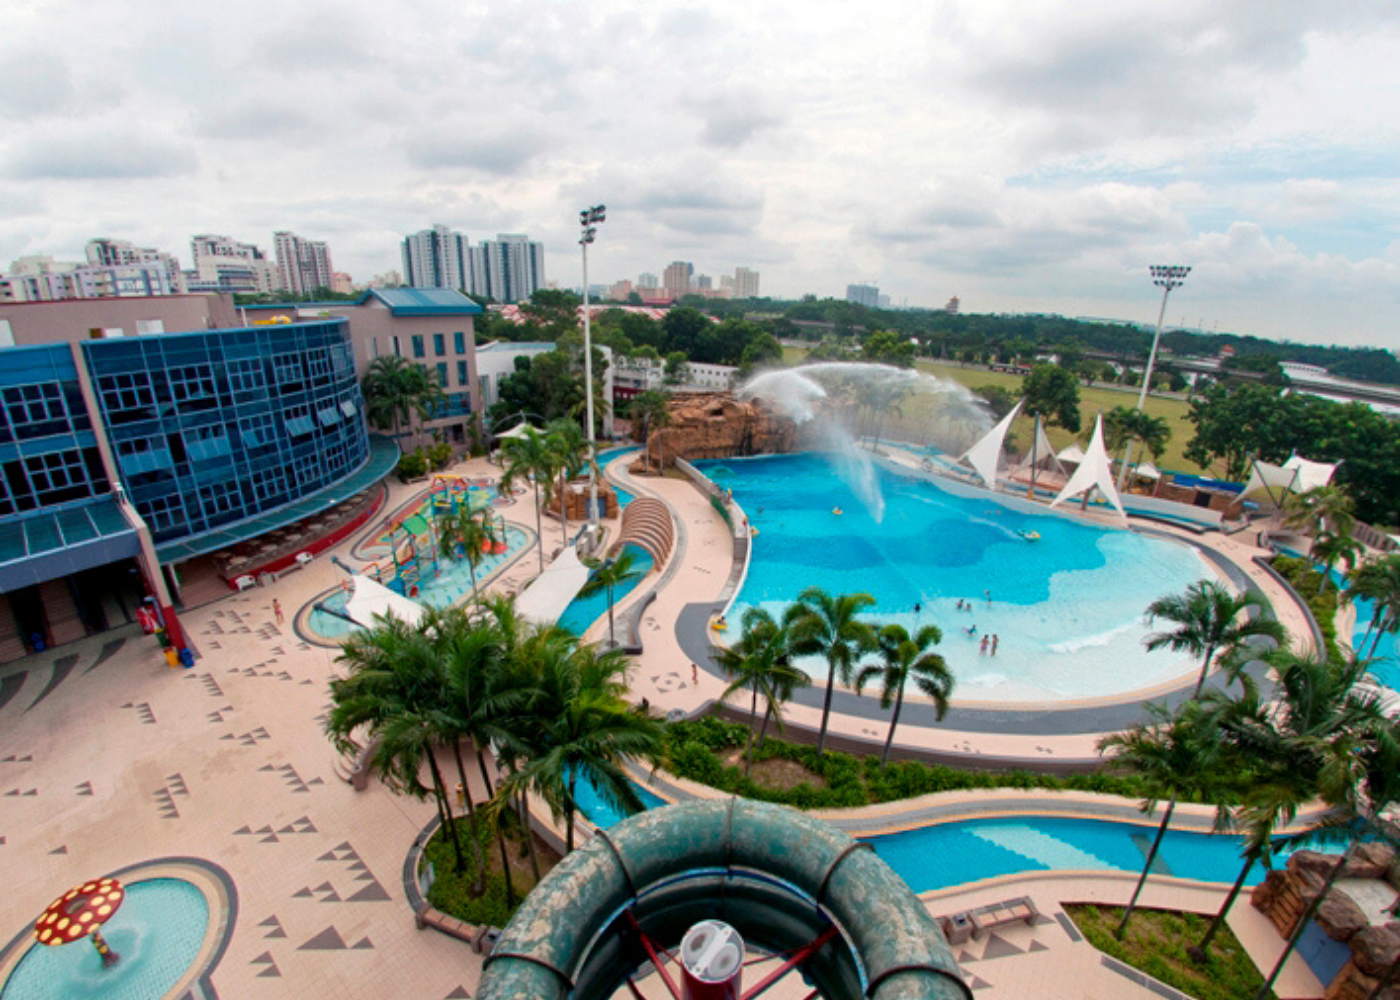 Jurong East Swimming Complex | Best public swimming pools in Singapore